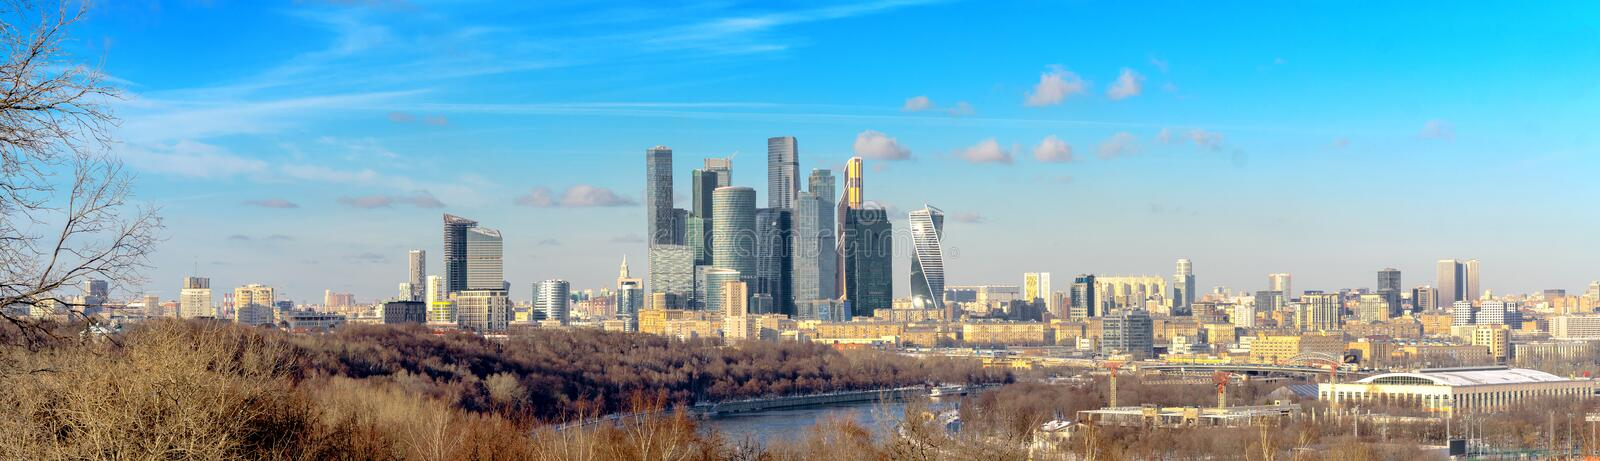 View of the Moscow City with the Vorobyovy Hills royalty free stock photos